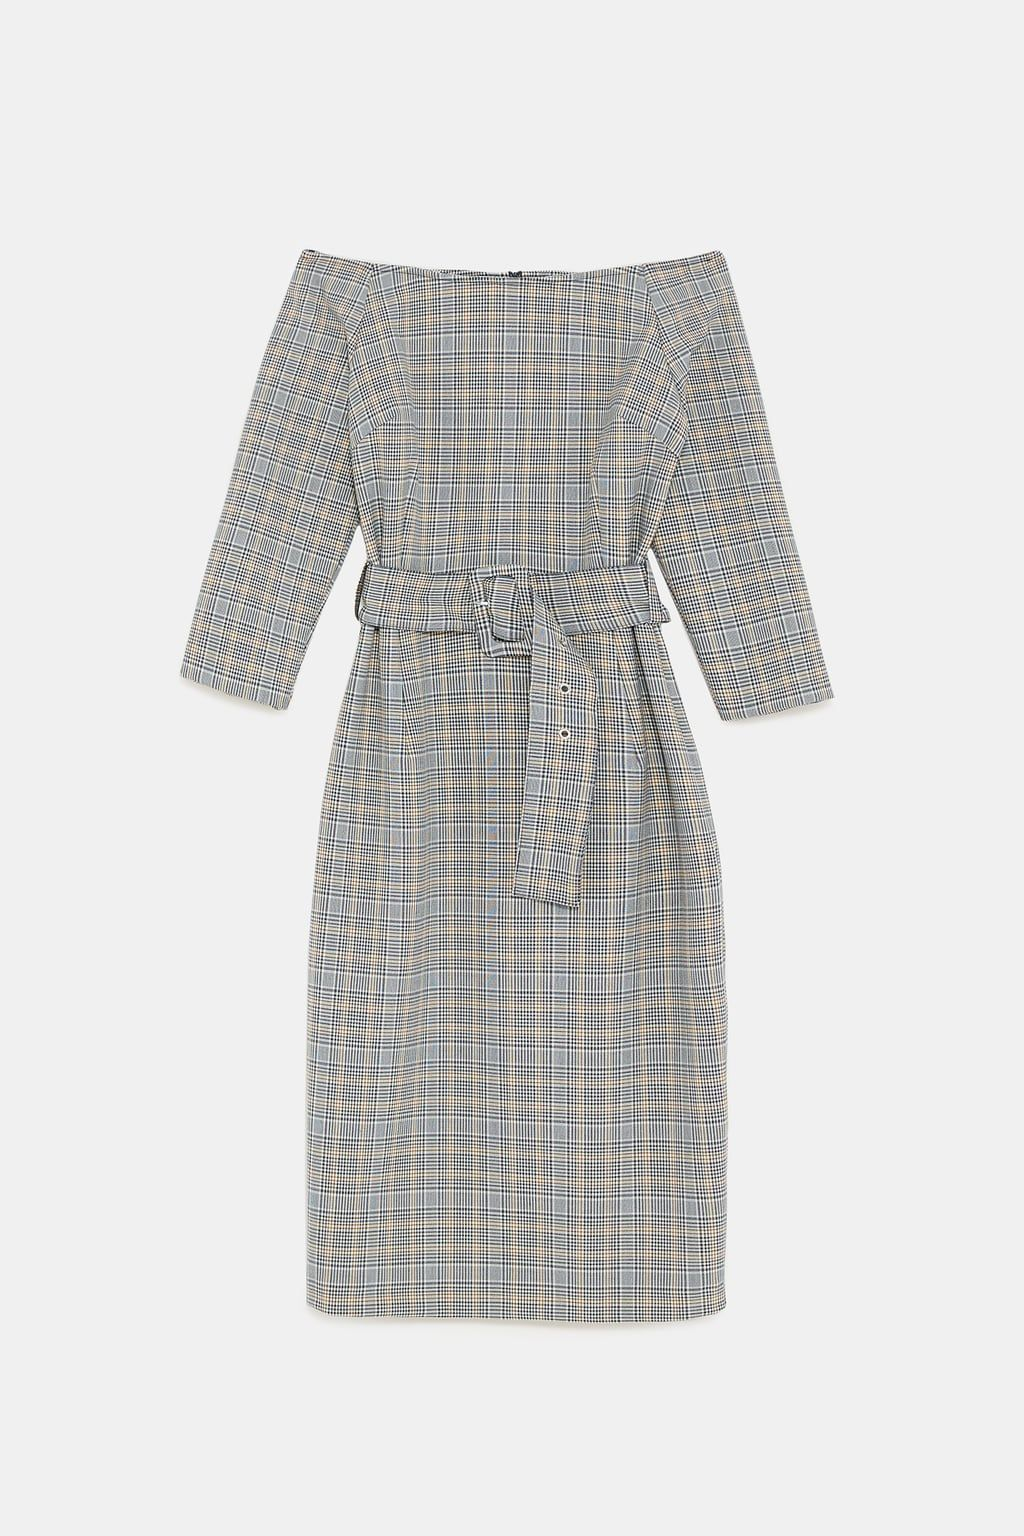 610c68d1 Image 8 of BELTED CHECKERED DRESS from Zara | Dresses | Dresses ...